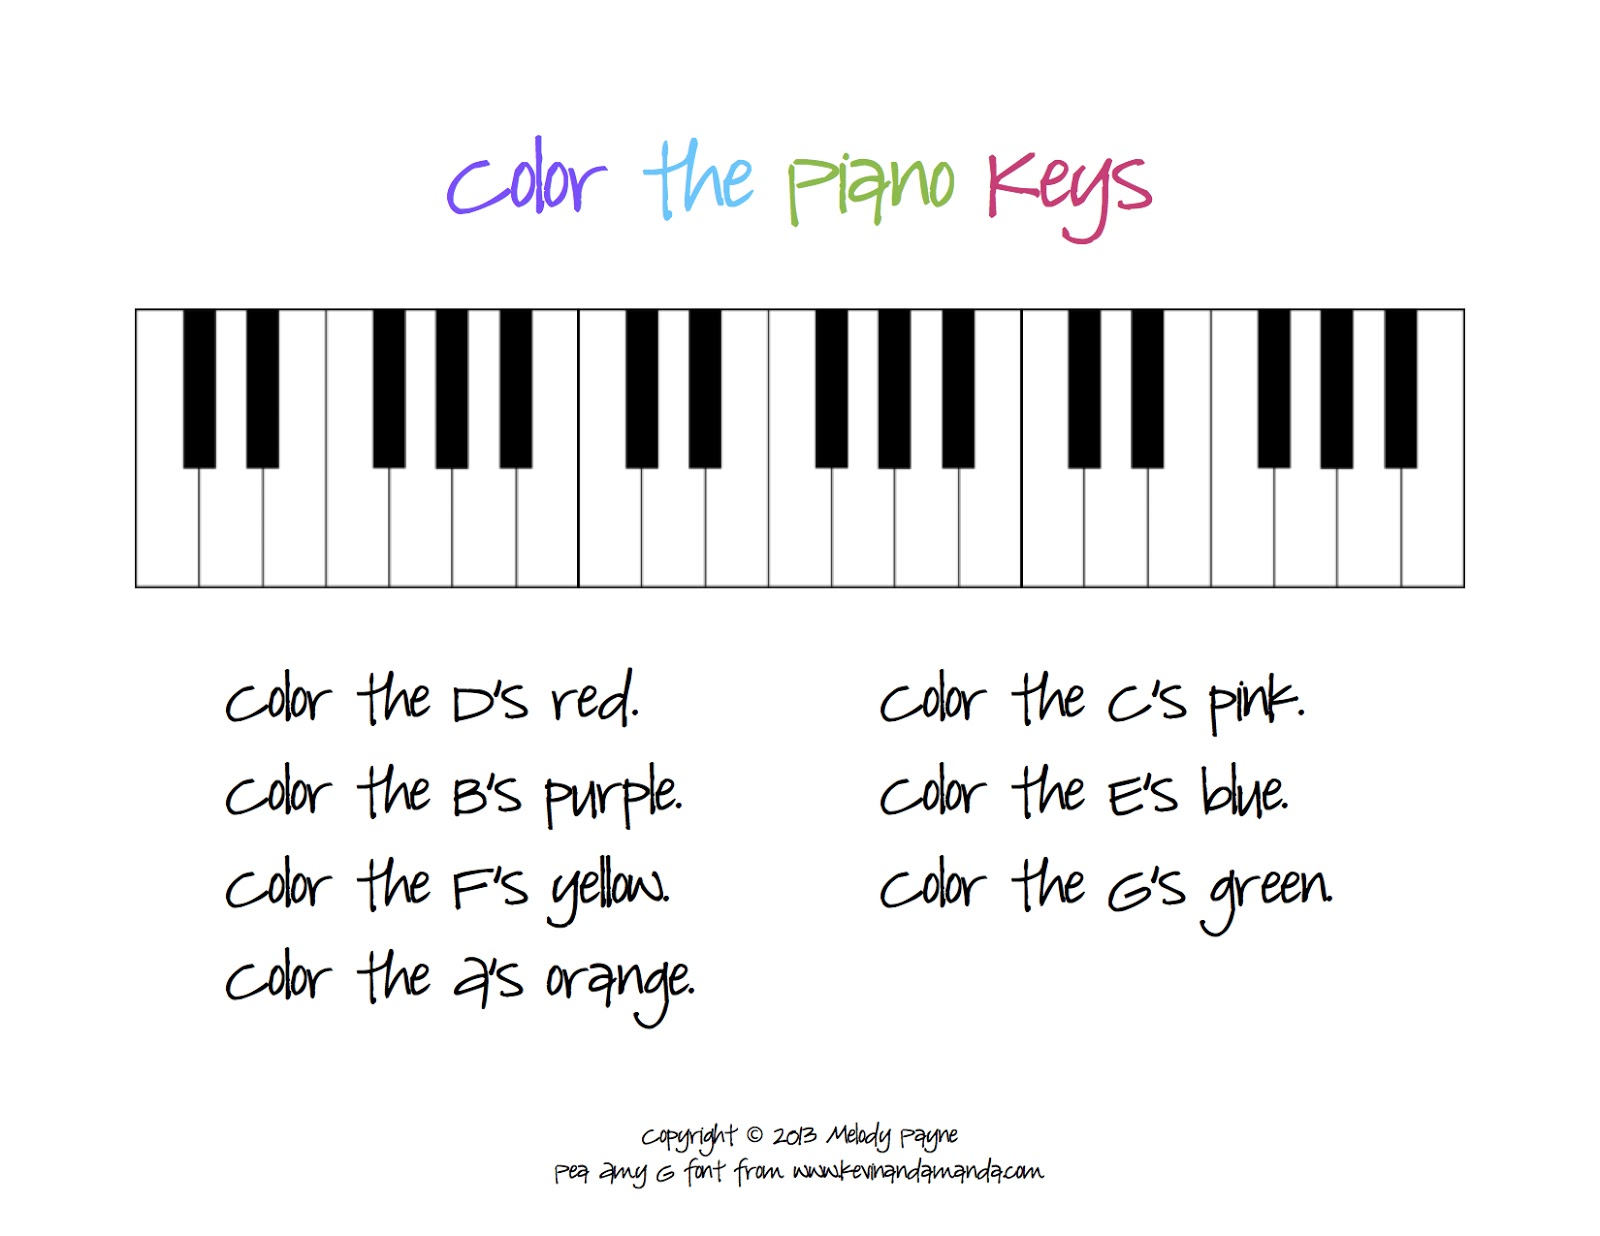 Color the Piano Keys Sheet | <!--Can't find substitution for tag ...